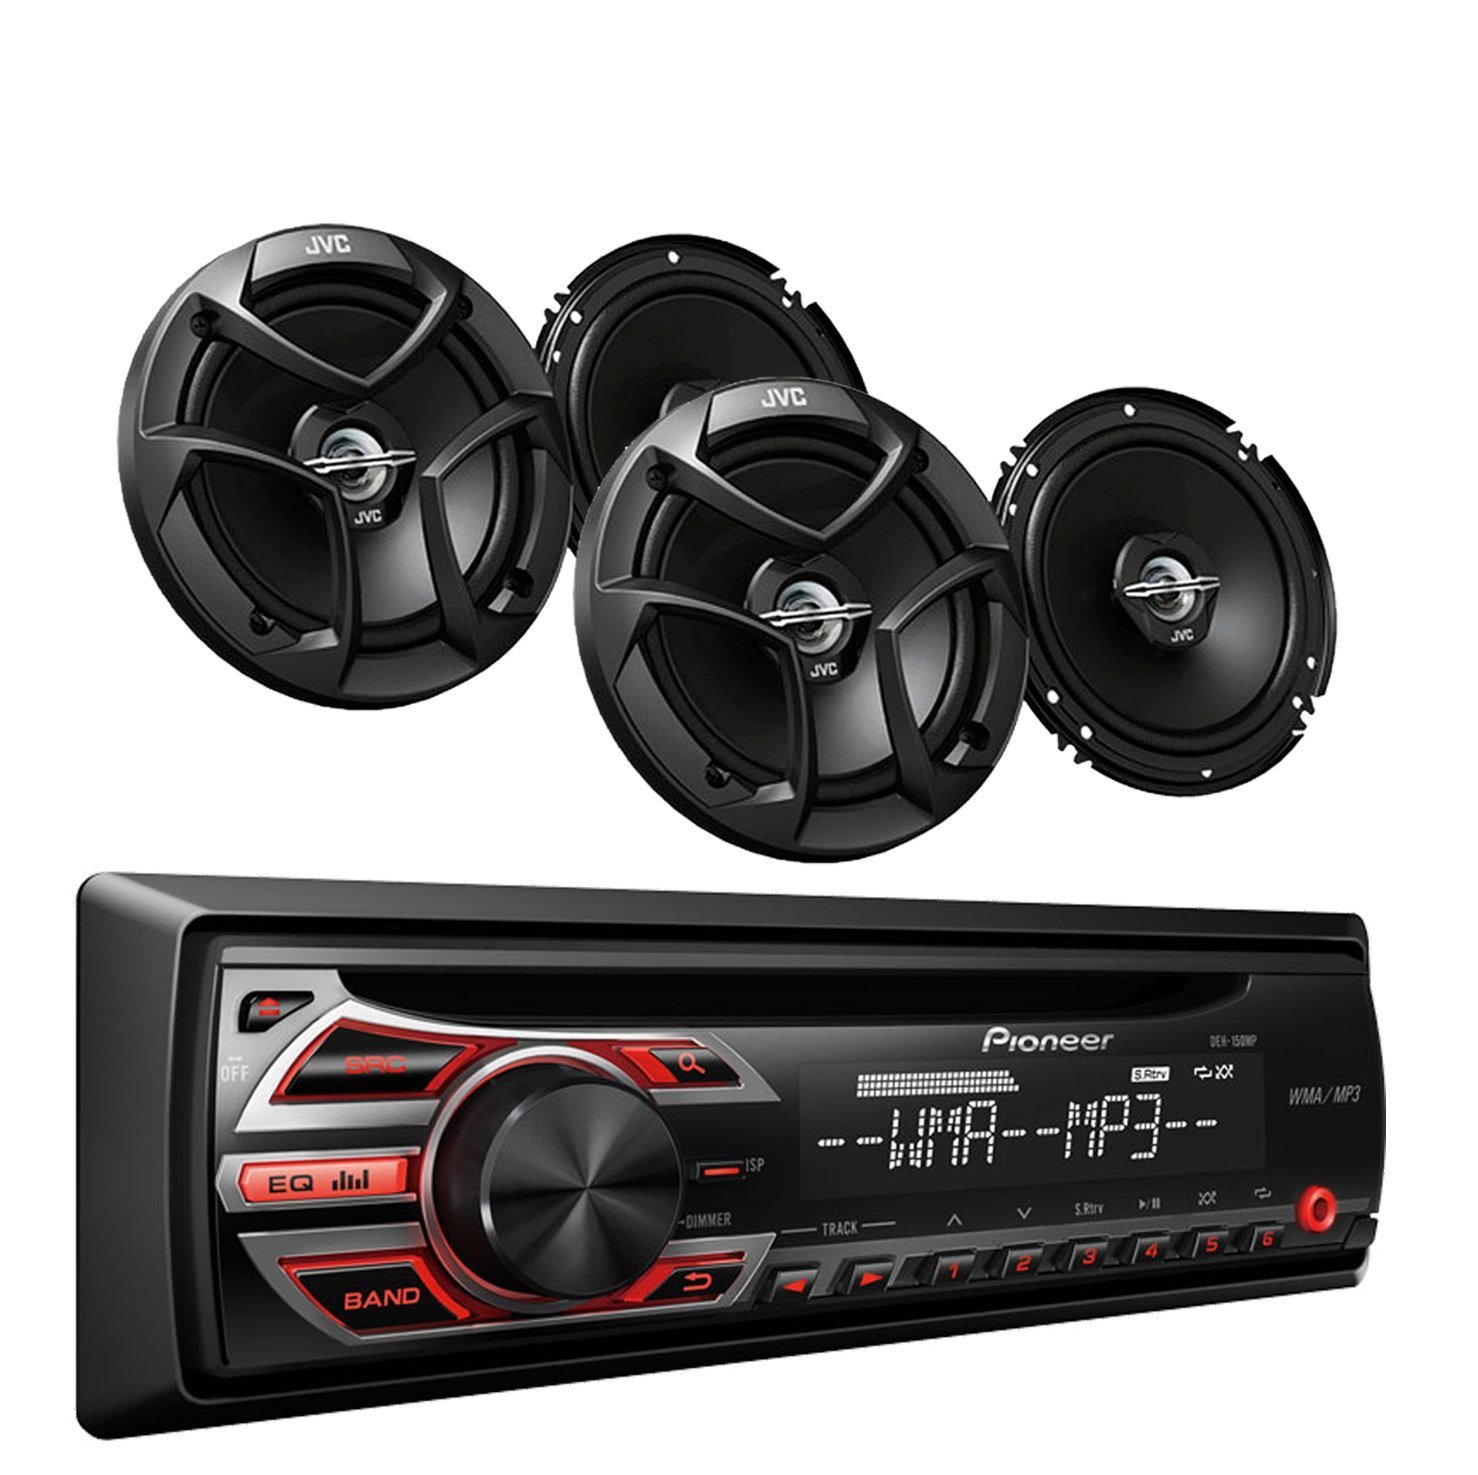 car stereo kits with speakers amazon compioneer deh 150mp car audio cd mp3 stereo radio player, front aux input with